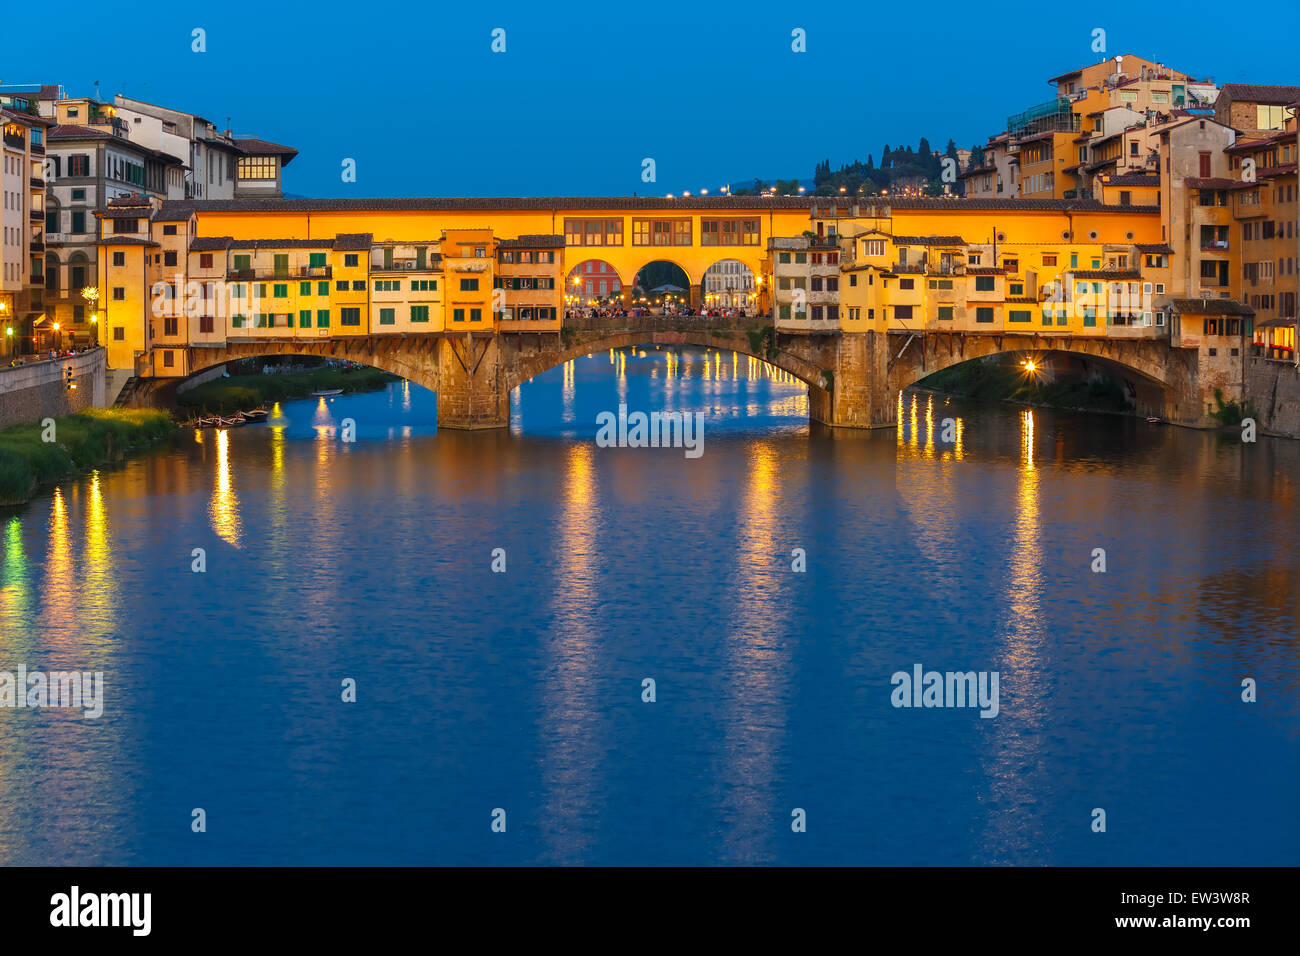 Arno and Ponte Vecchio at night, Florence, Italy - Stock Image